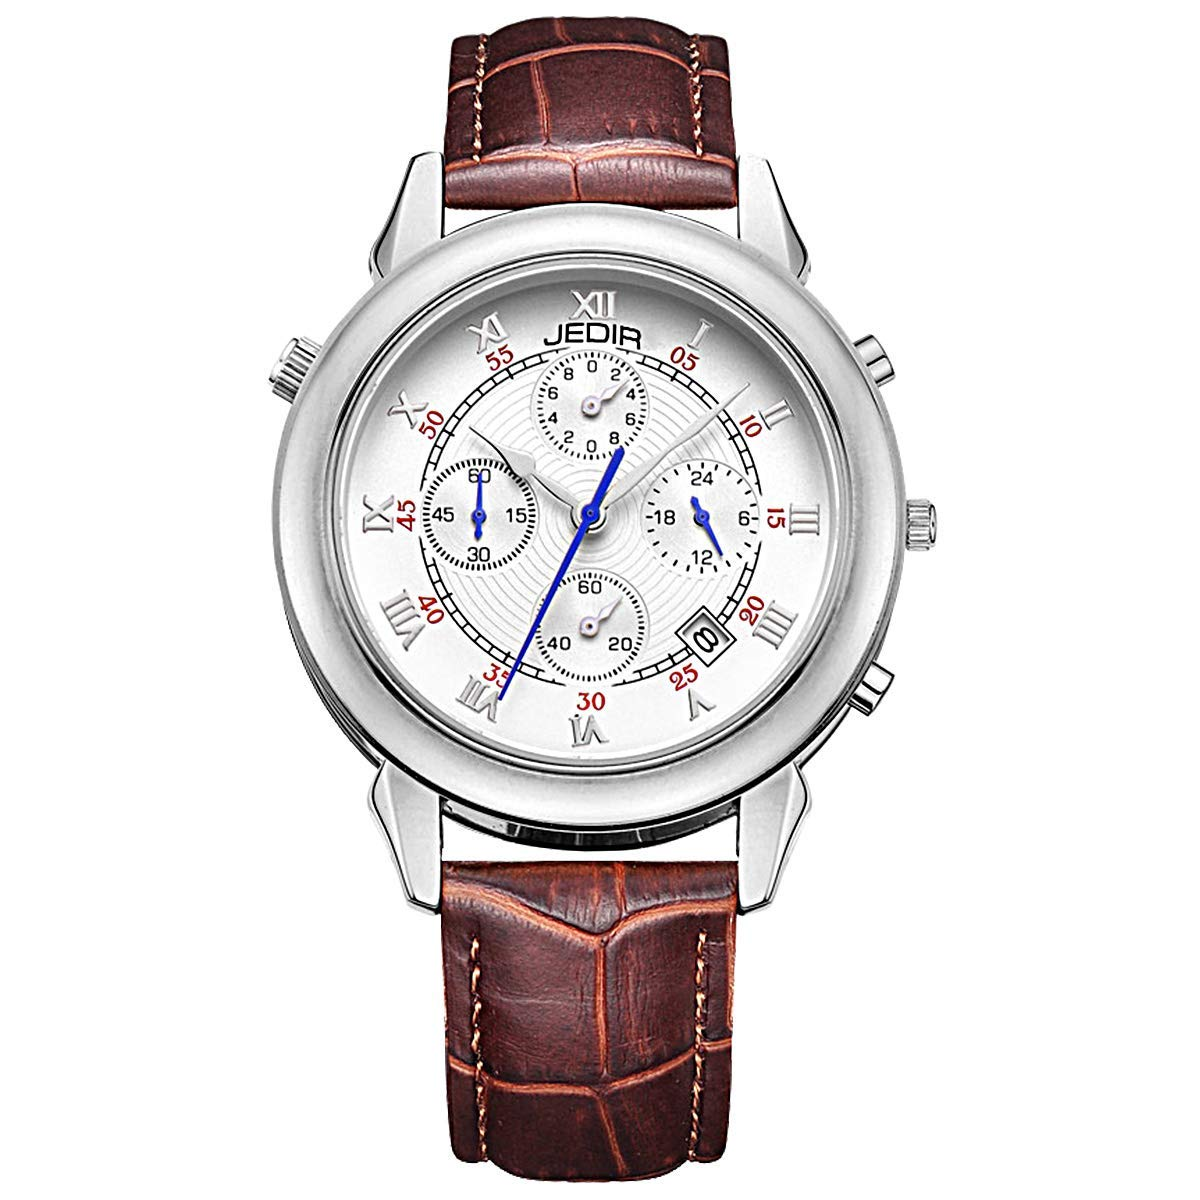 Men's Chronograph Watch Analogue Quartz Watch